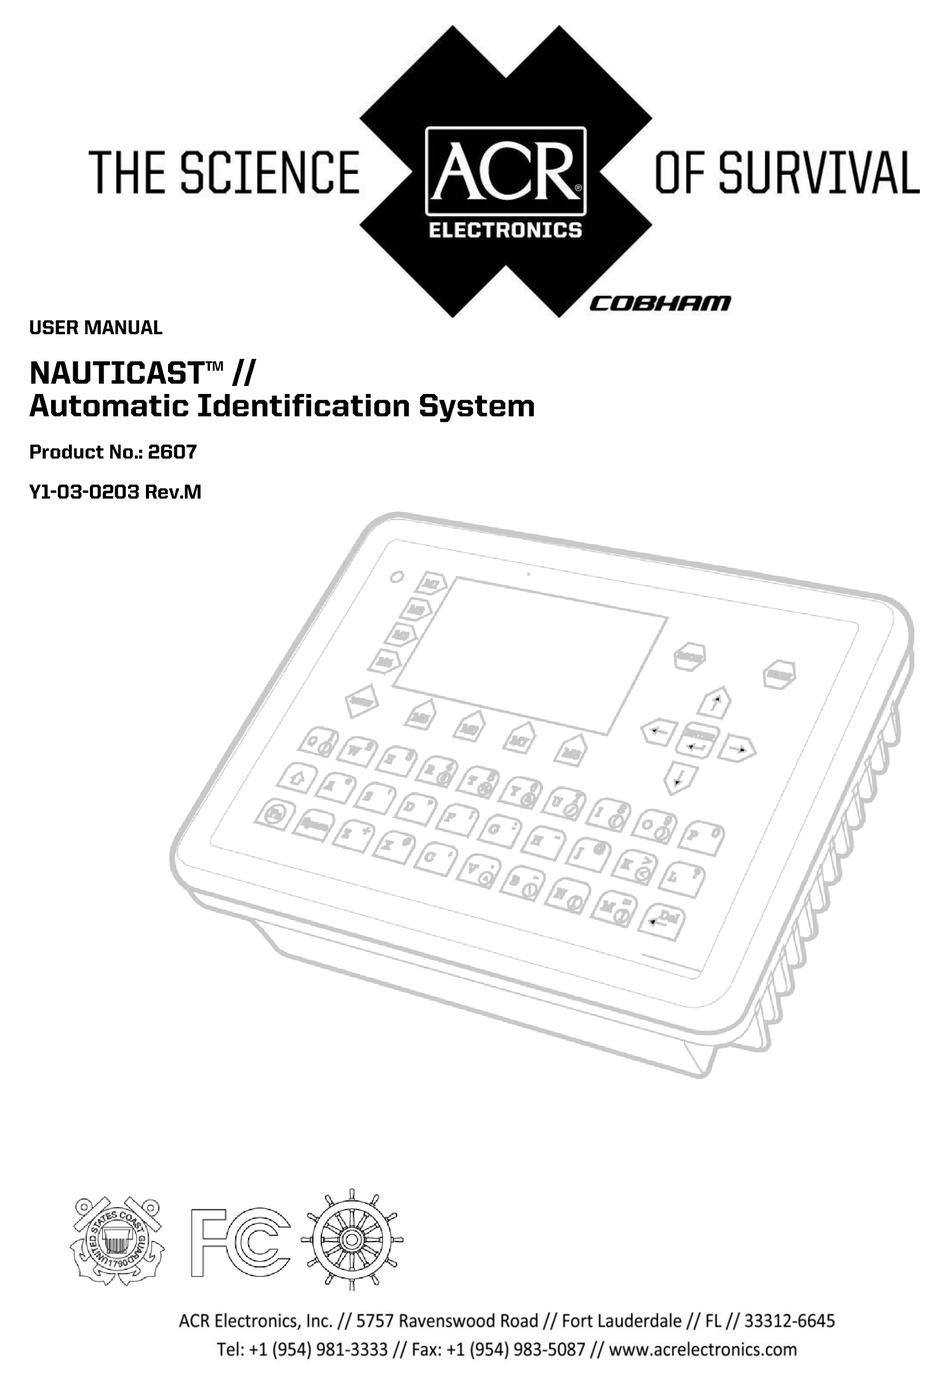 ACR ELECTRONICS NAUTICAST 2607 USER MANUAL Pdf Download